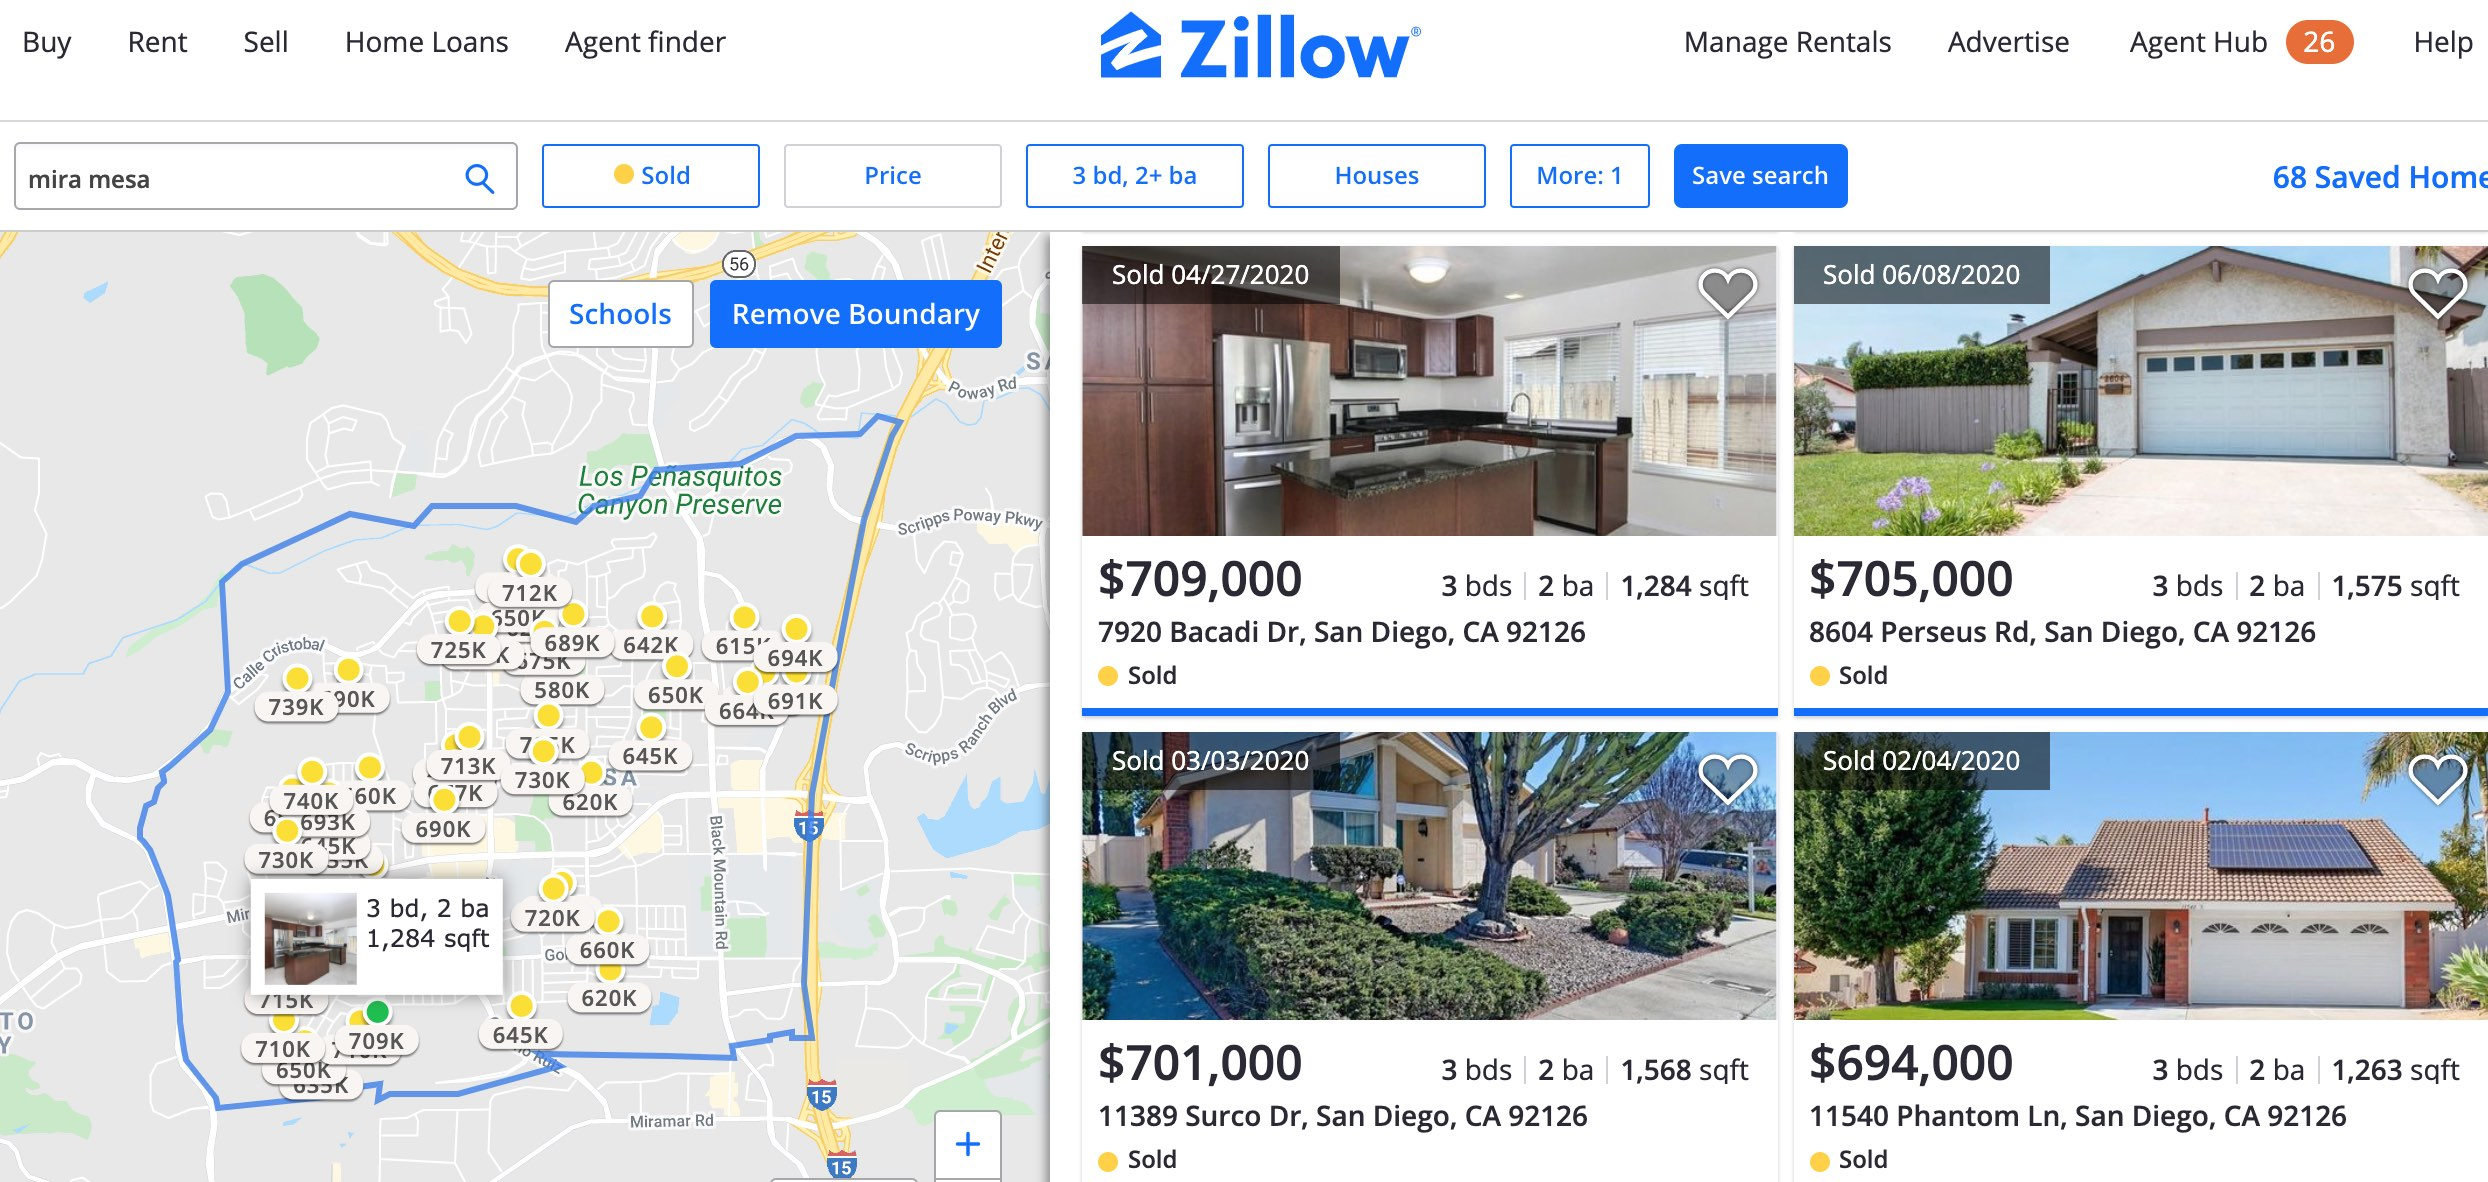 find arv on Zillow